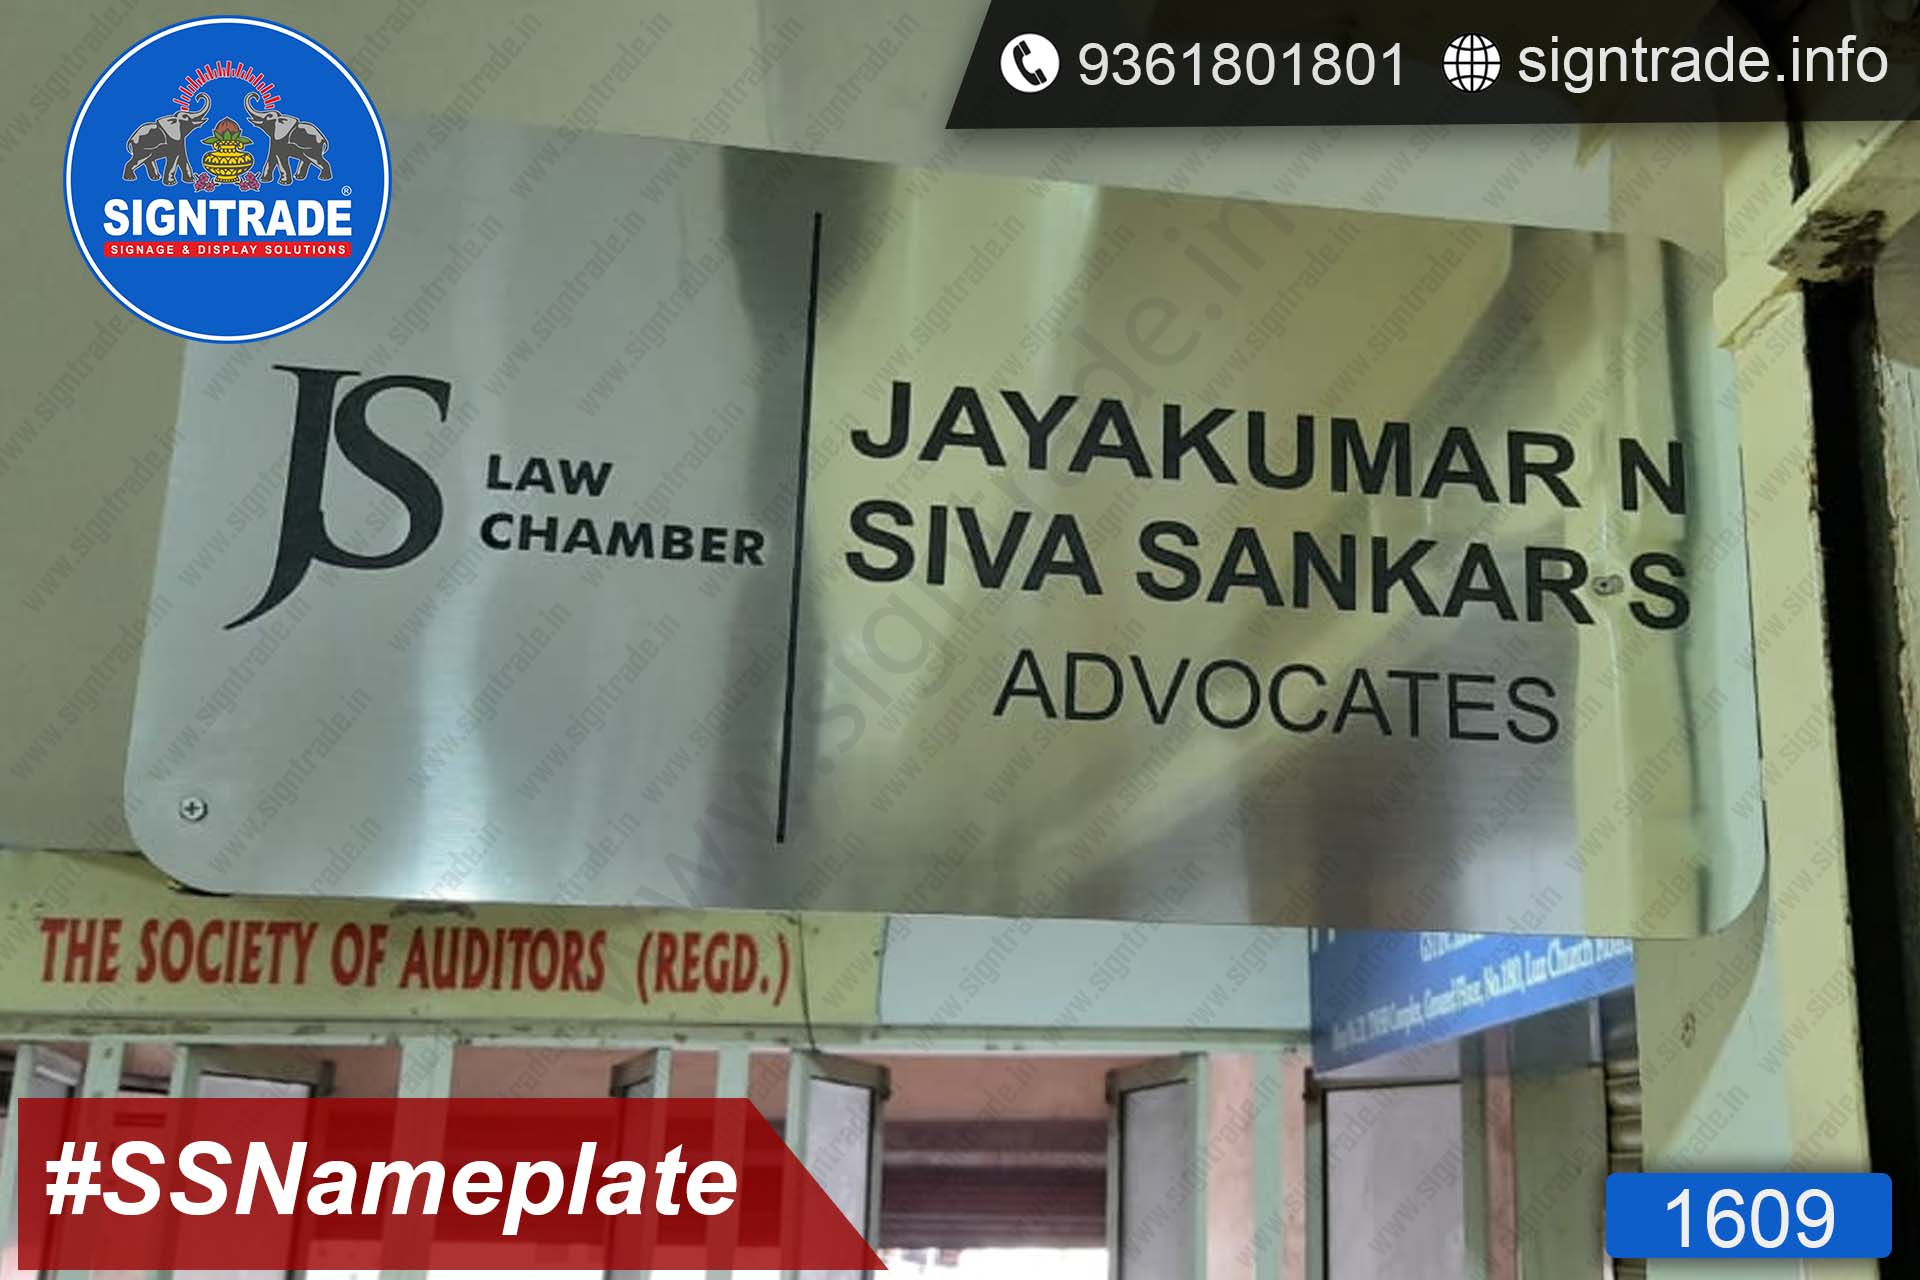 JS Law Chamber - SIGNTRADE - Stainless Steel Name Board Manufacture in Chennai